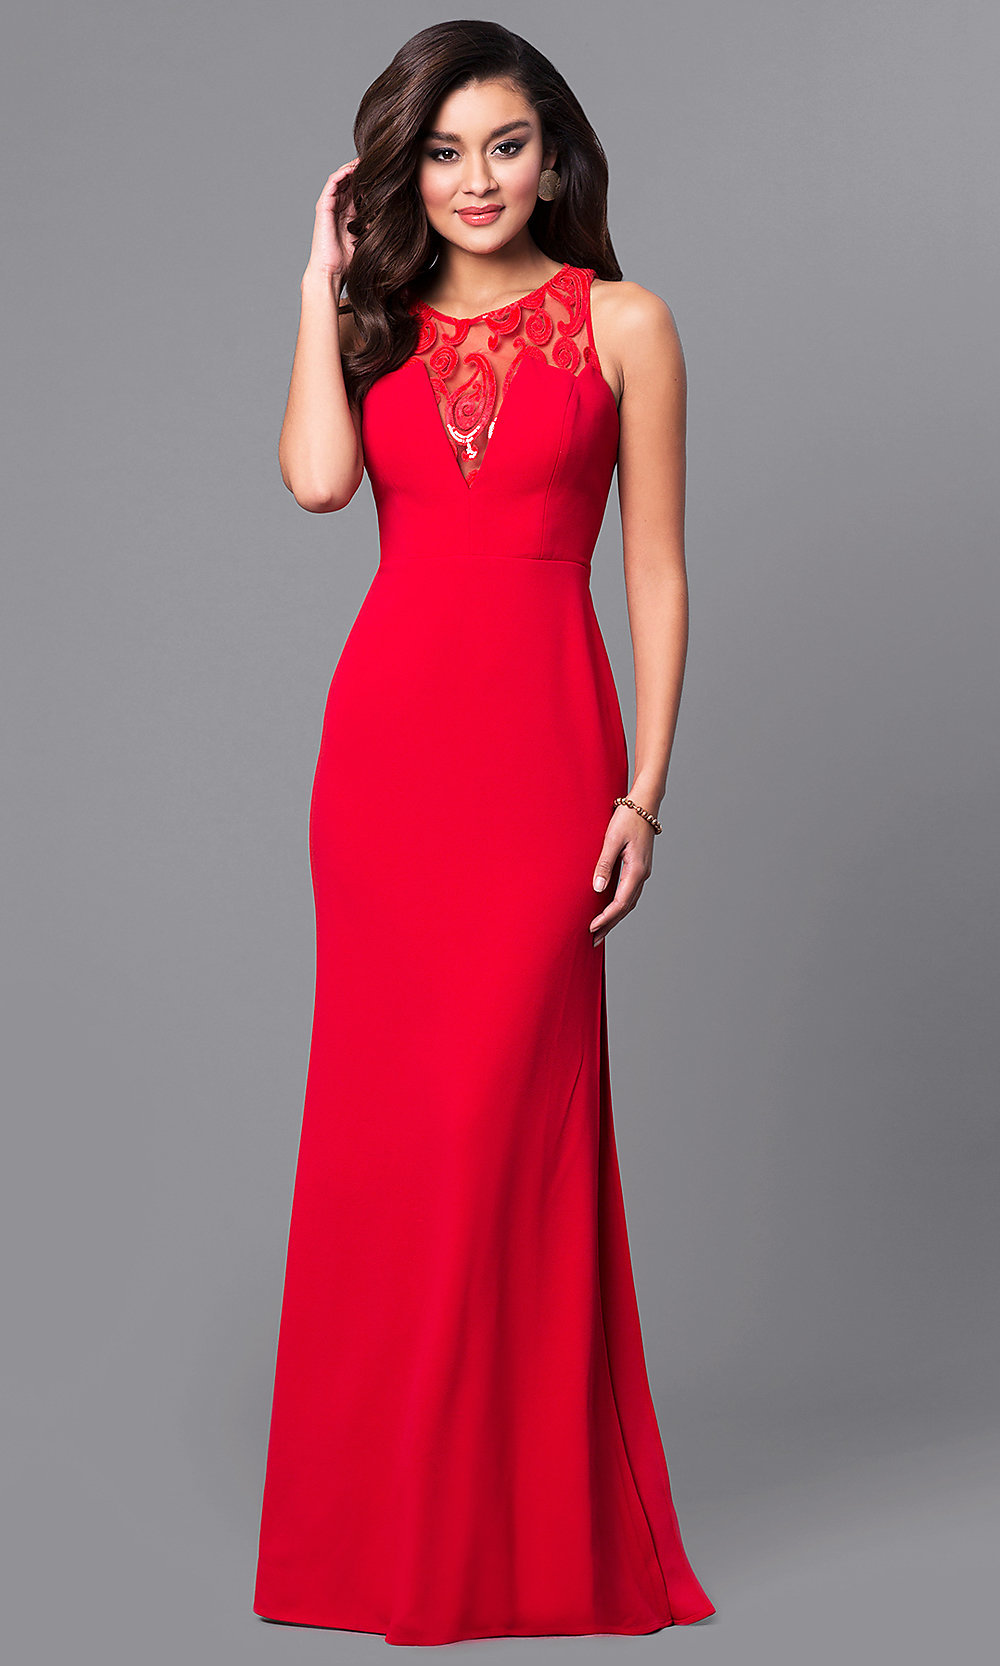 Ruffled Red Junior-Size Long Prom Dress - PromGirl